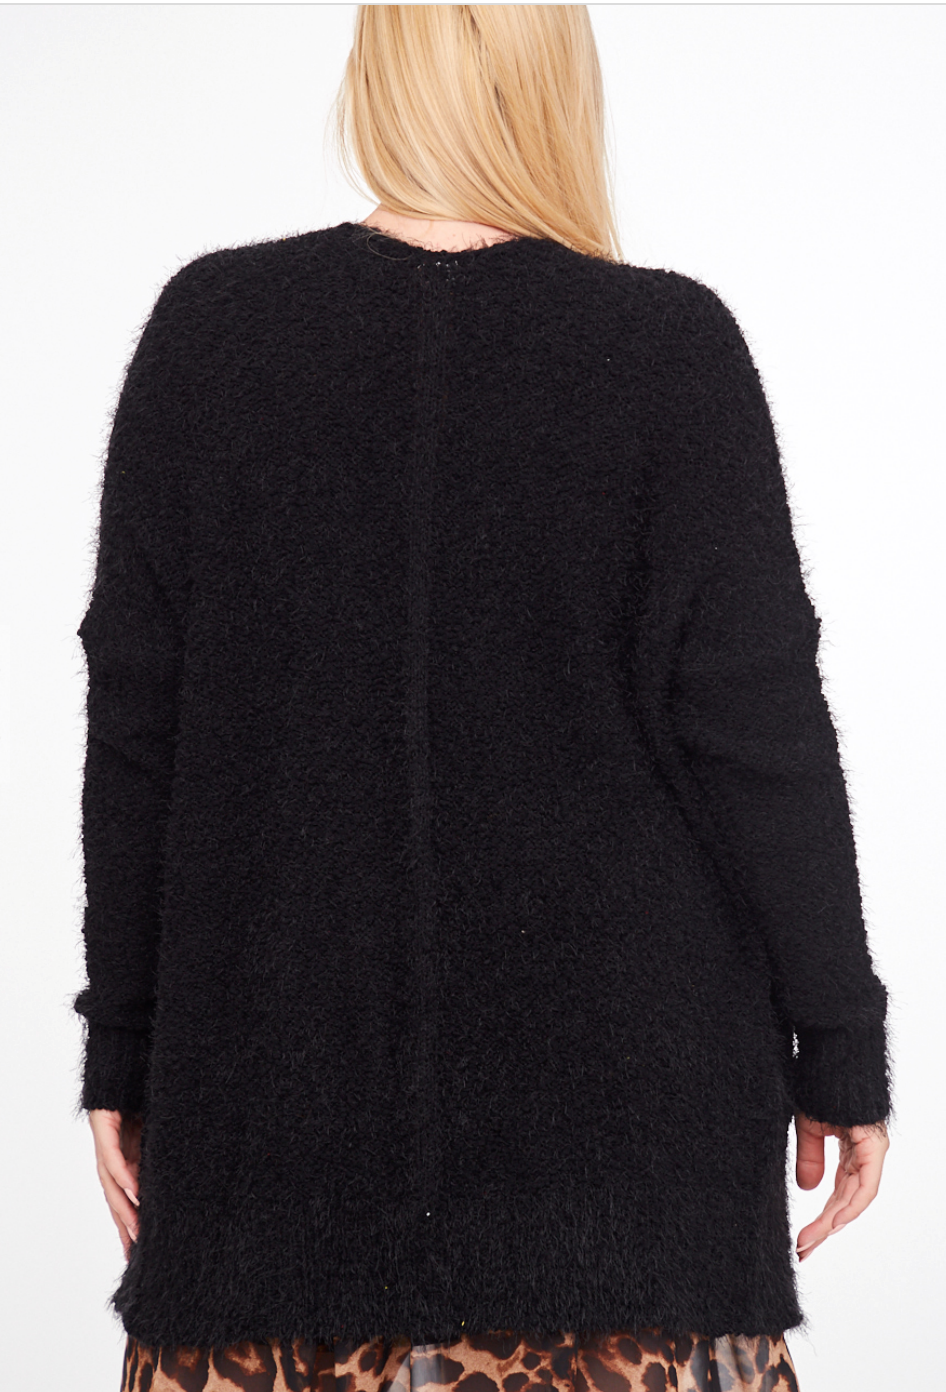 Back in Black Relaxed Fit Sweater